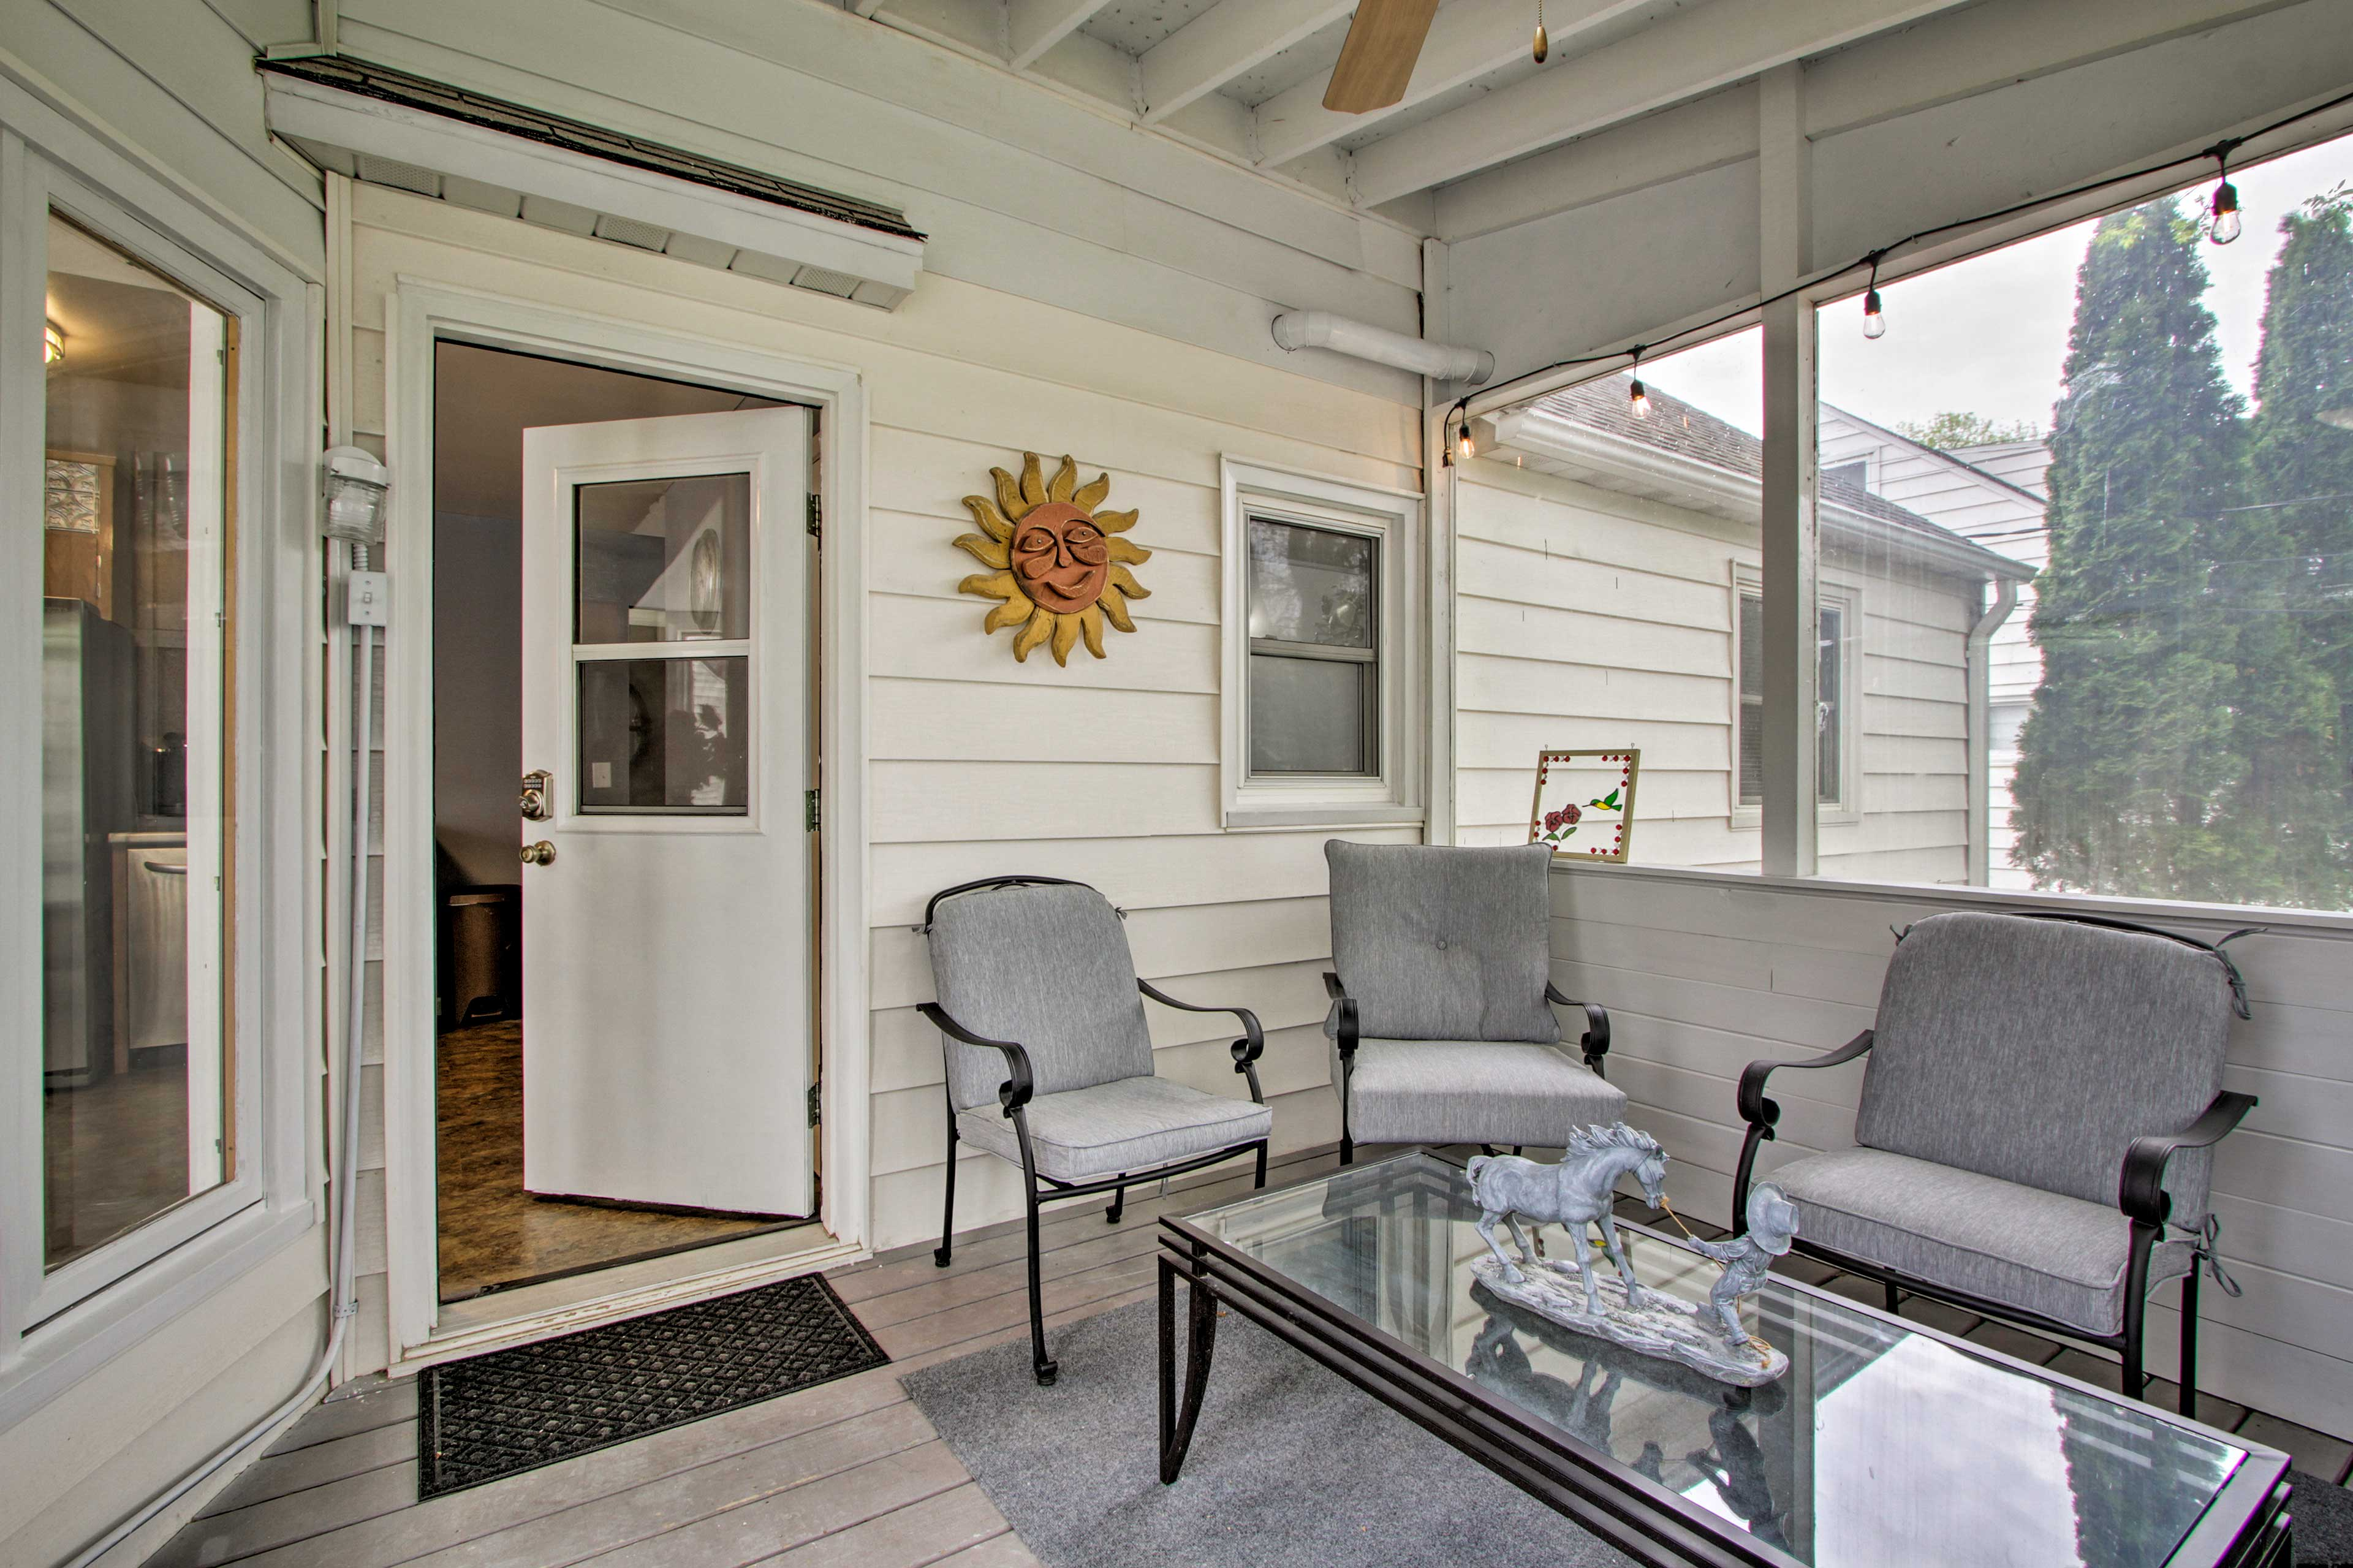 Catch some shade and privacy in the screened porch.